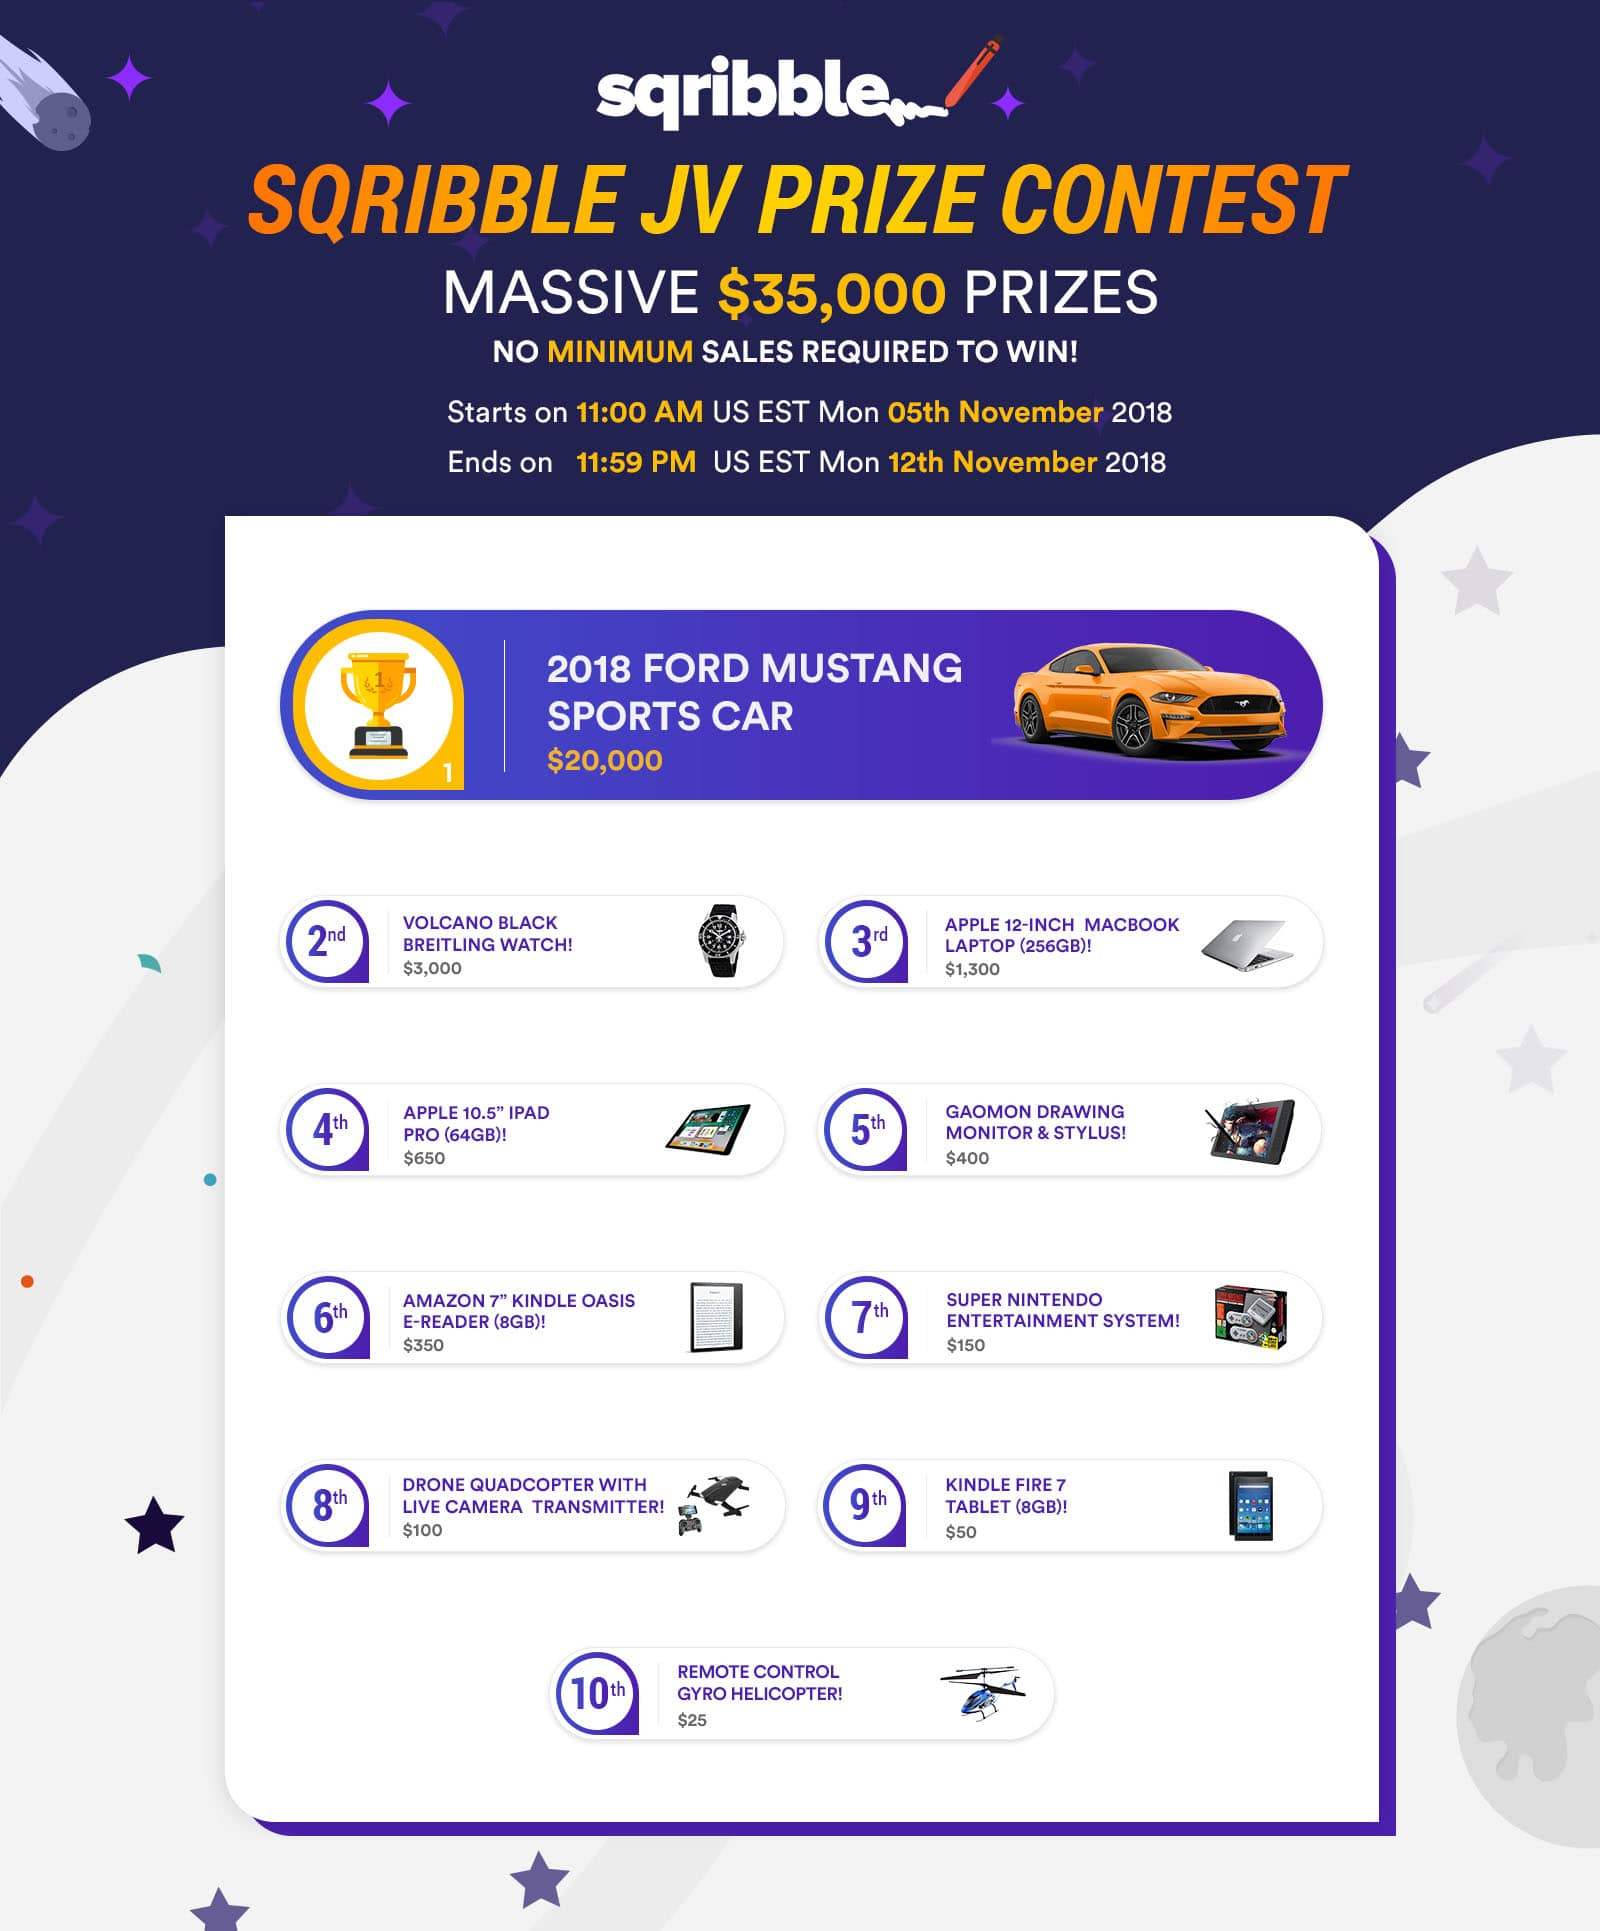 JV PRIZE CONTEST - worth $35,000